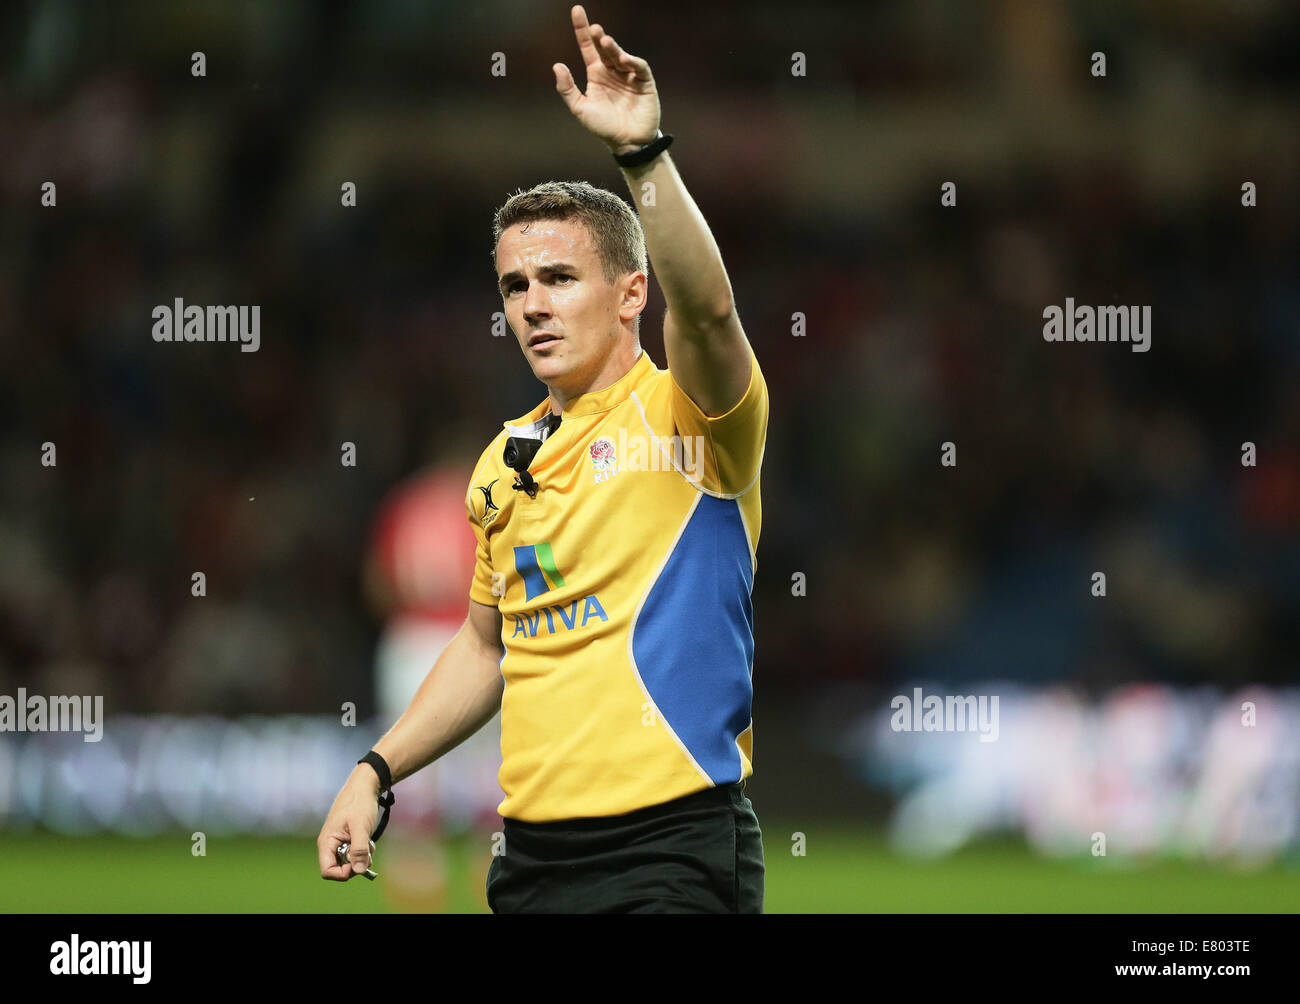 Oxford, UK. 26th Sep, 2014. Aviva Premiership. Senior match official Luke Pearce during the Aviva Premiership rugby - Stock Image